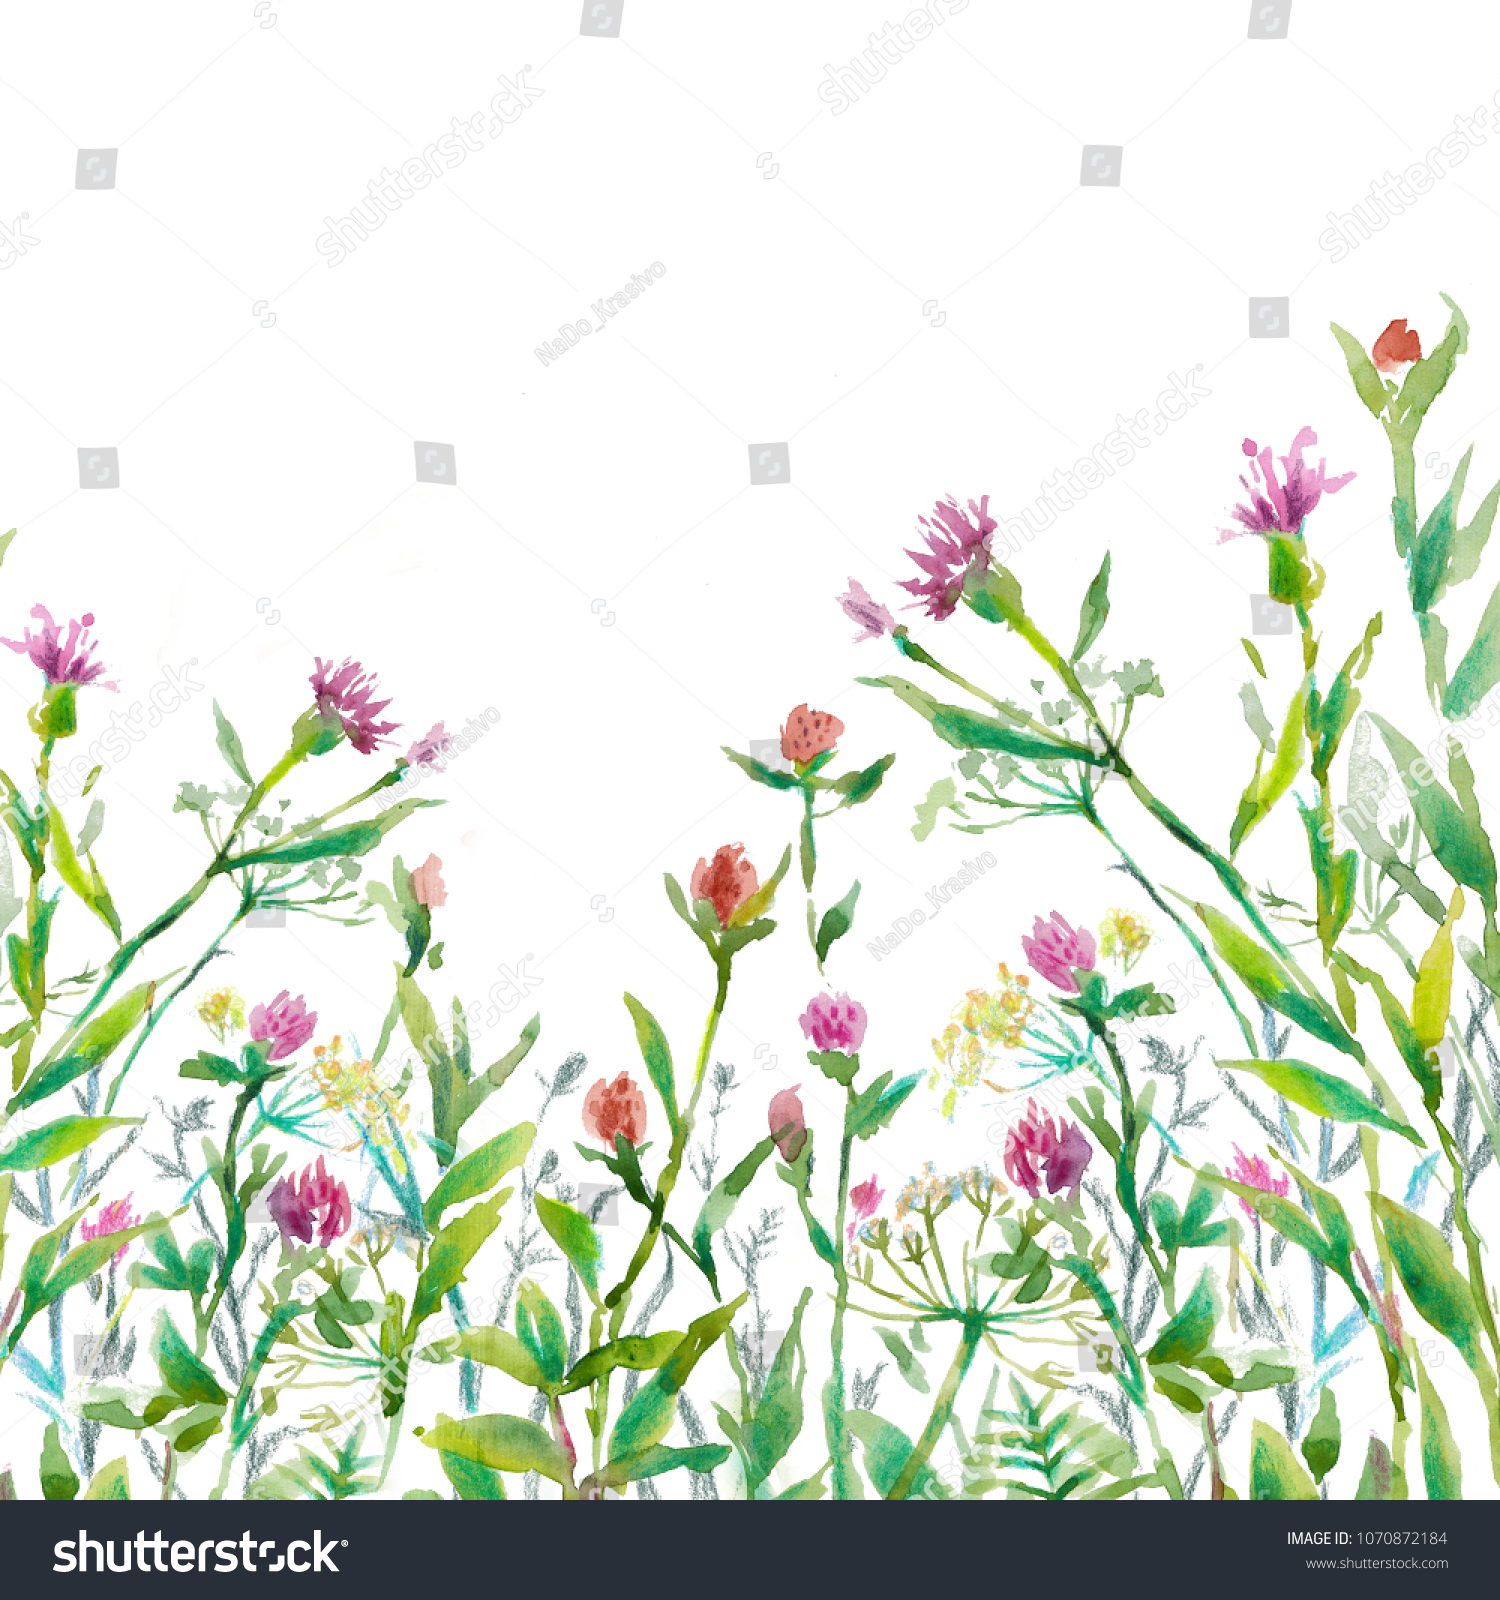 Royalty Free Stock Illustration Of Herbs Green Grass Pink Flowers On